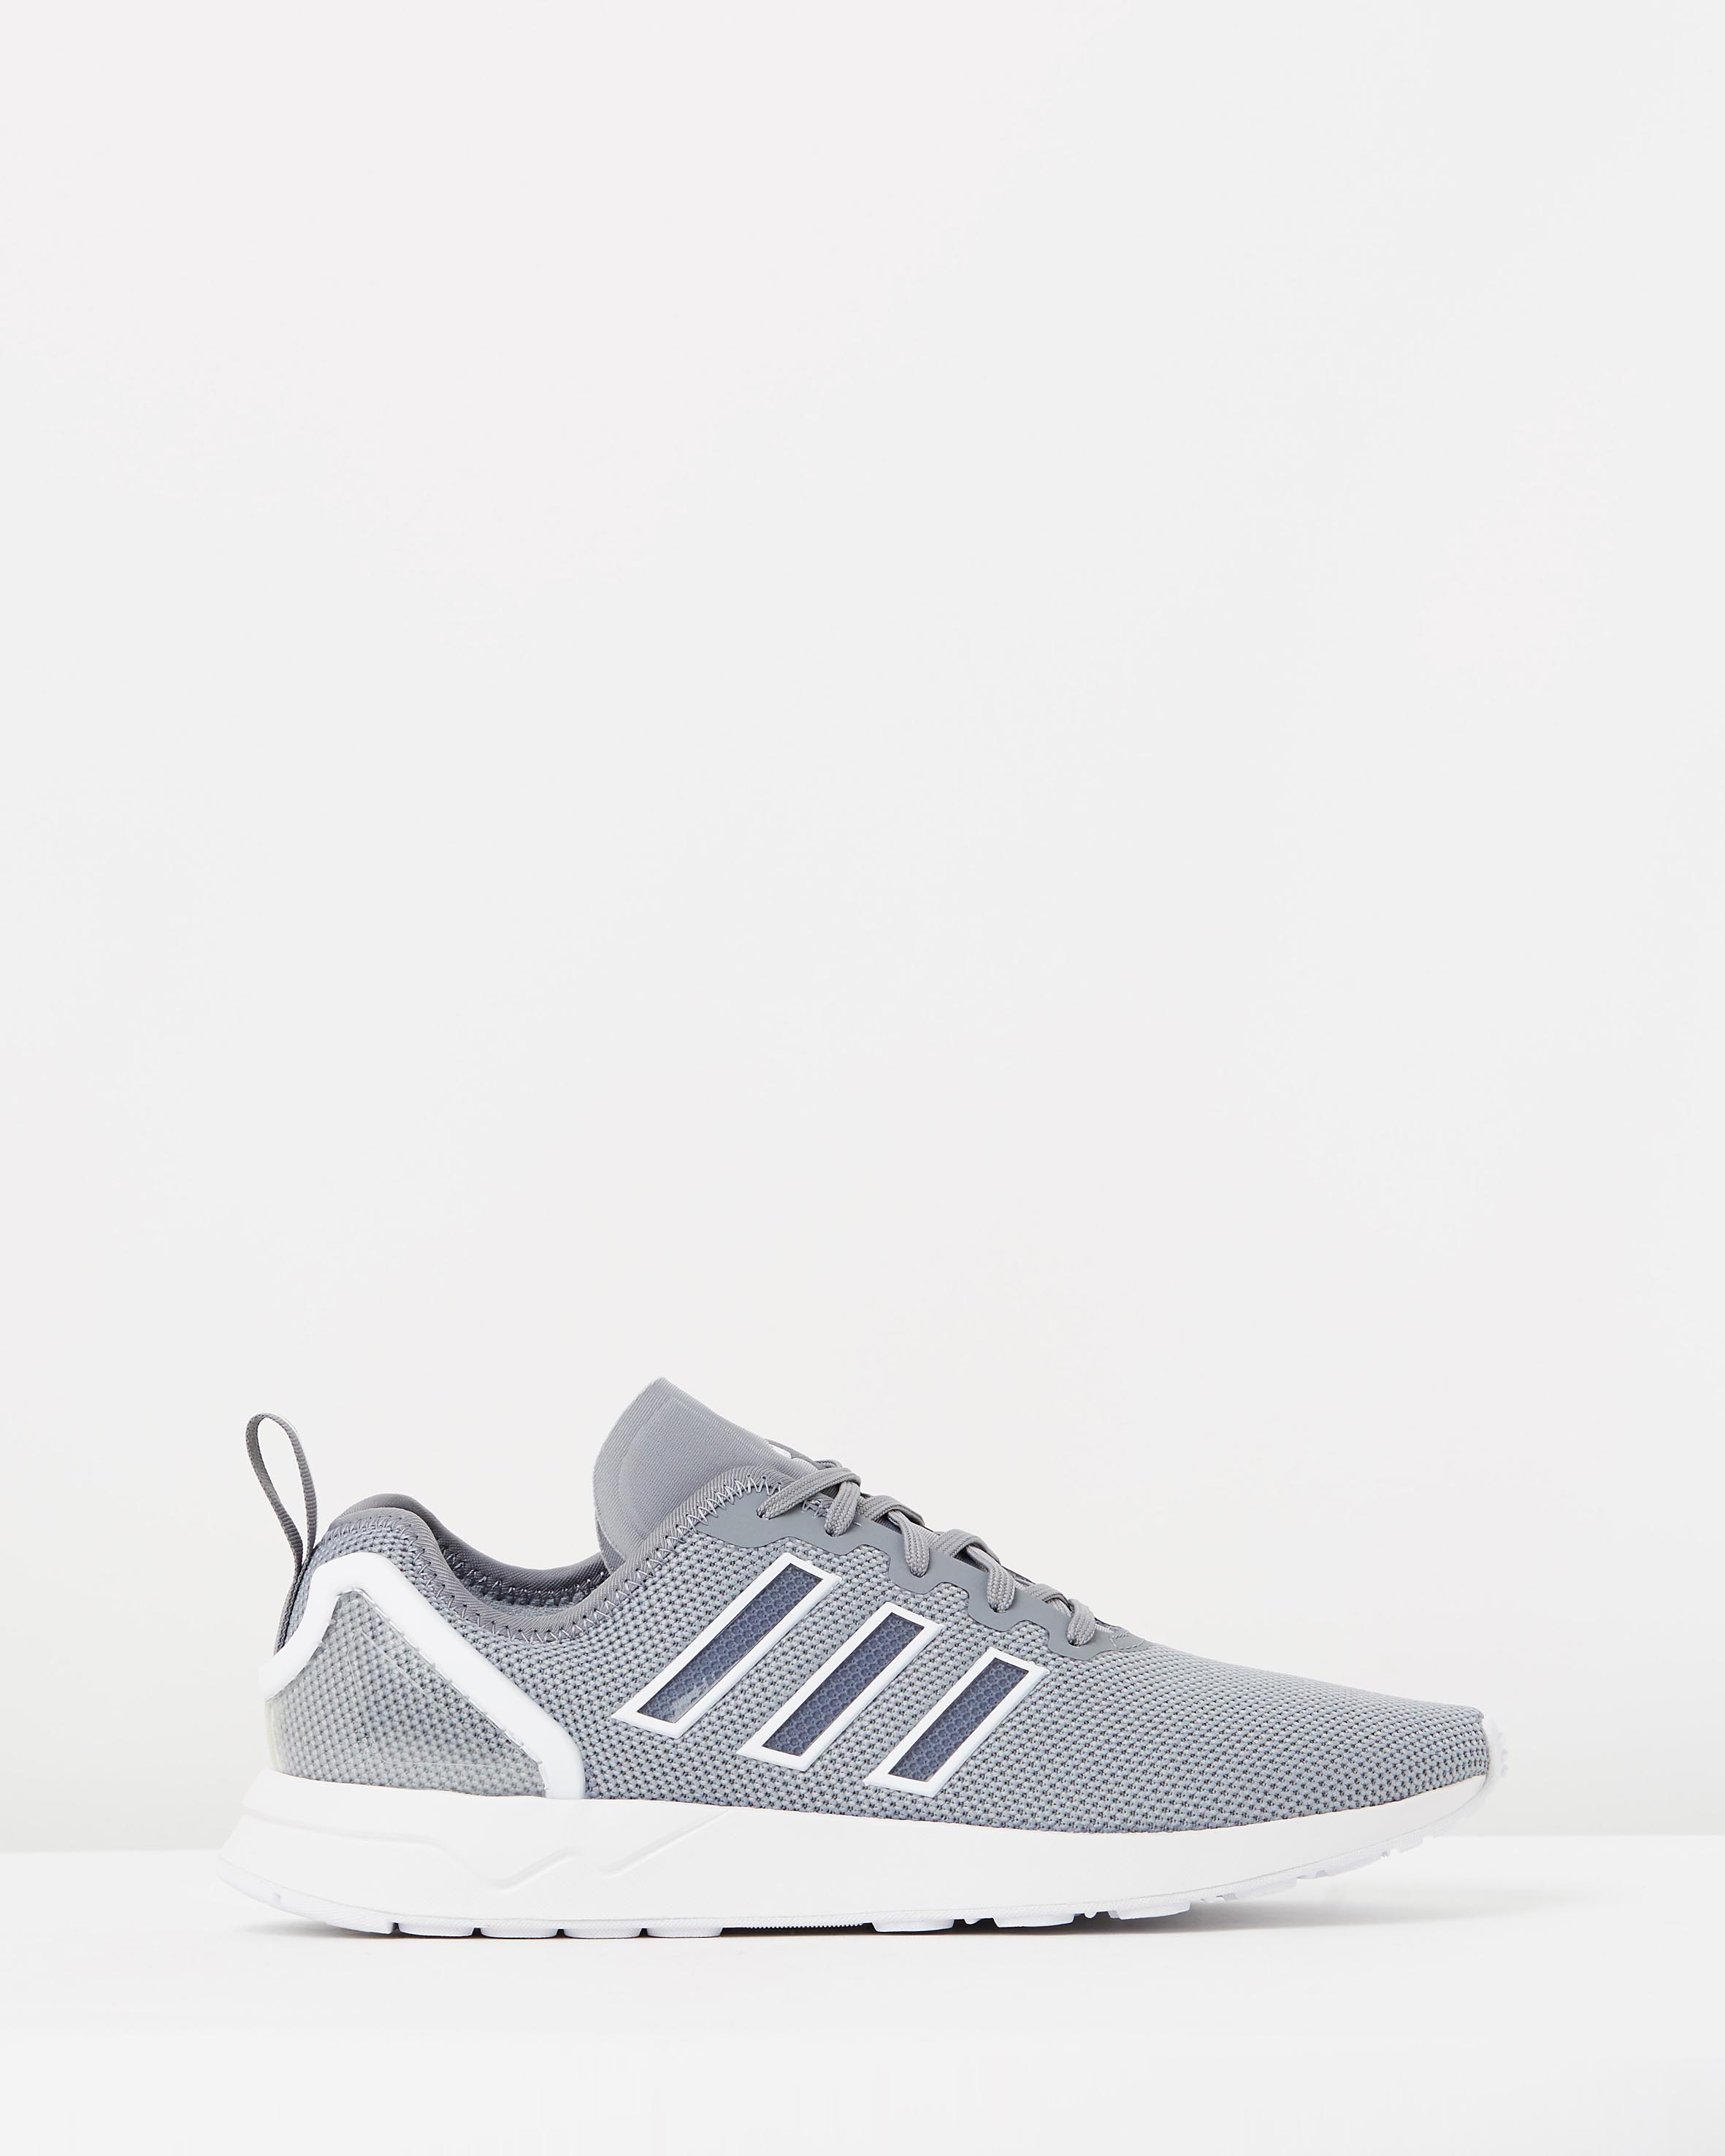 new product eb387 96d51 Adidas Men's ZX Flux ADV Grey & FTWR White